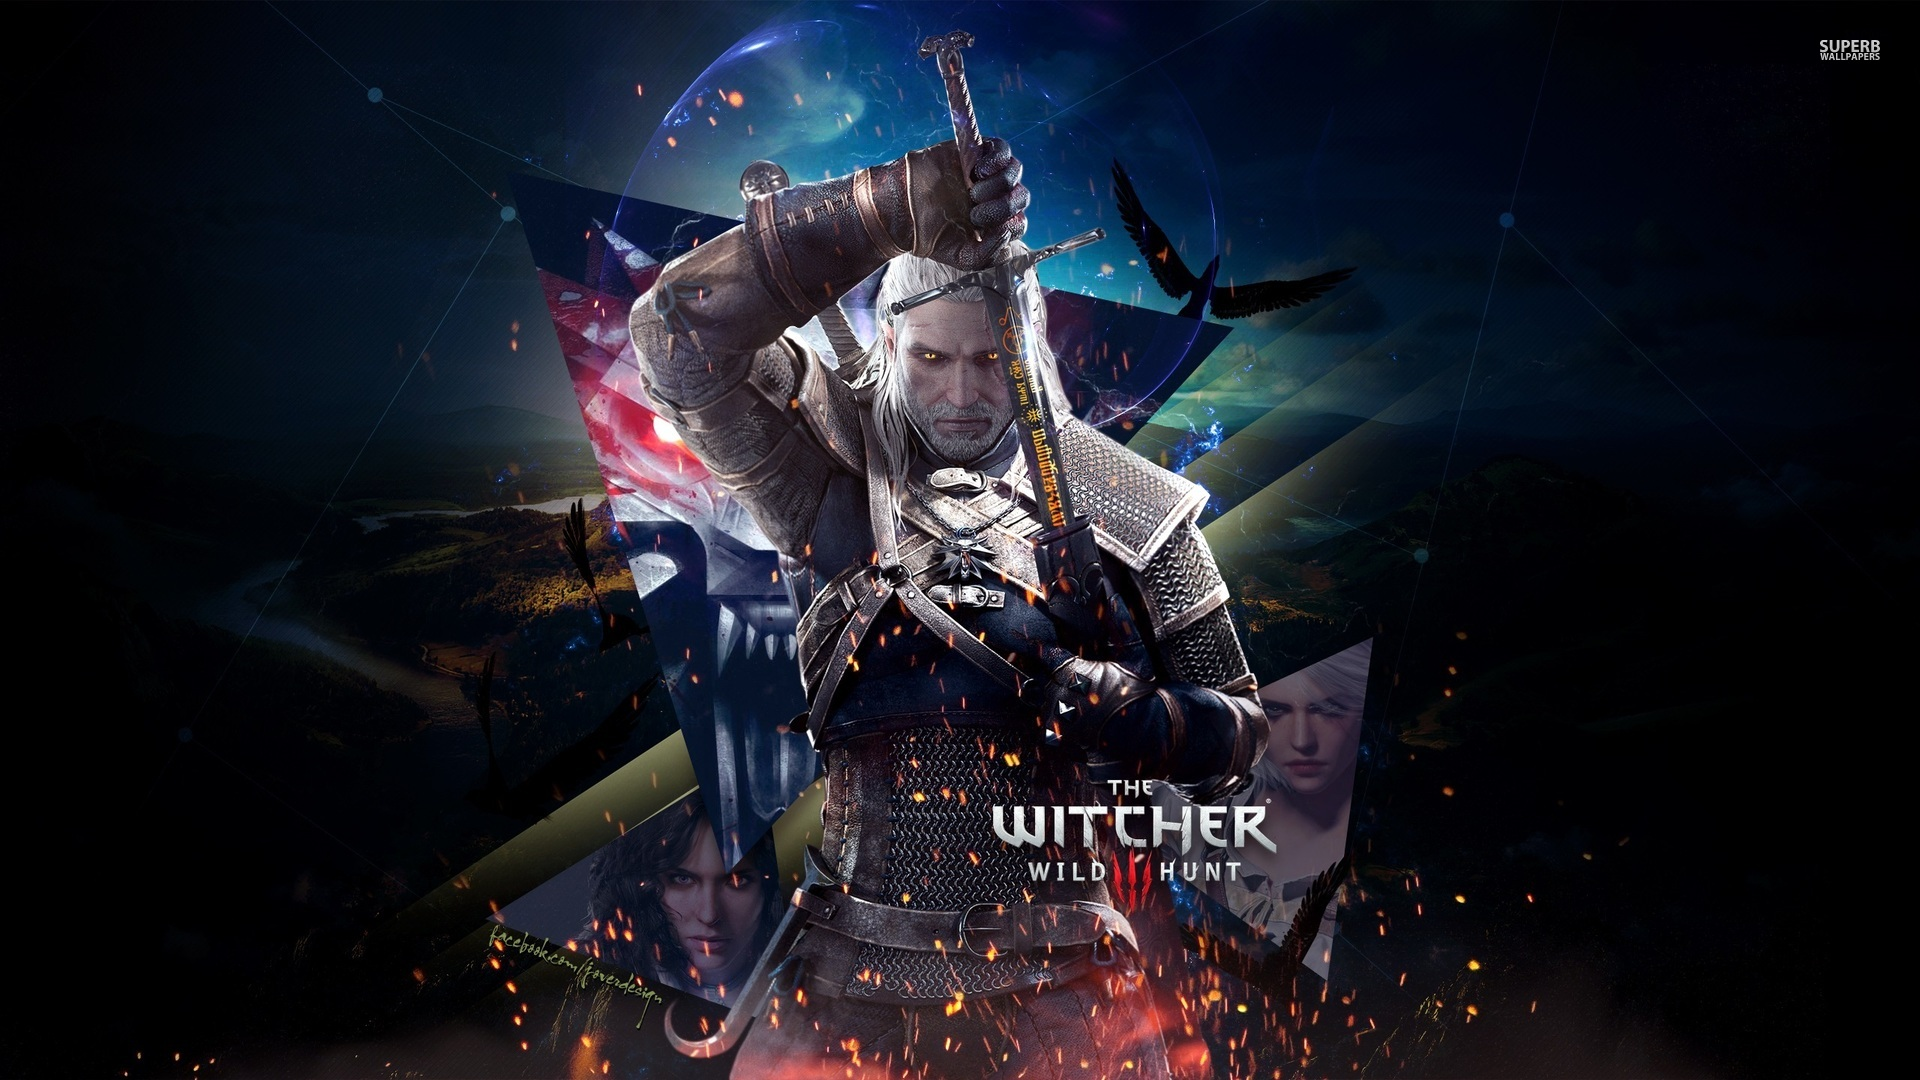 The Witcher 3 HD Wallpaper Background Images 1920x1080